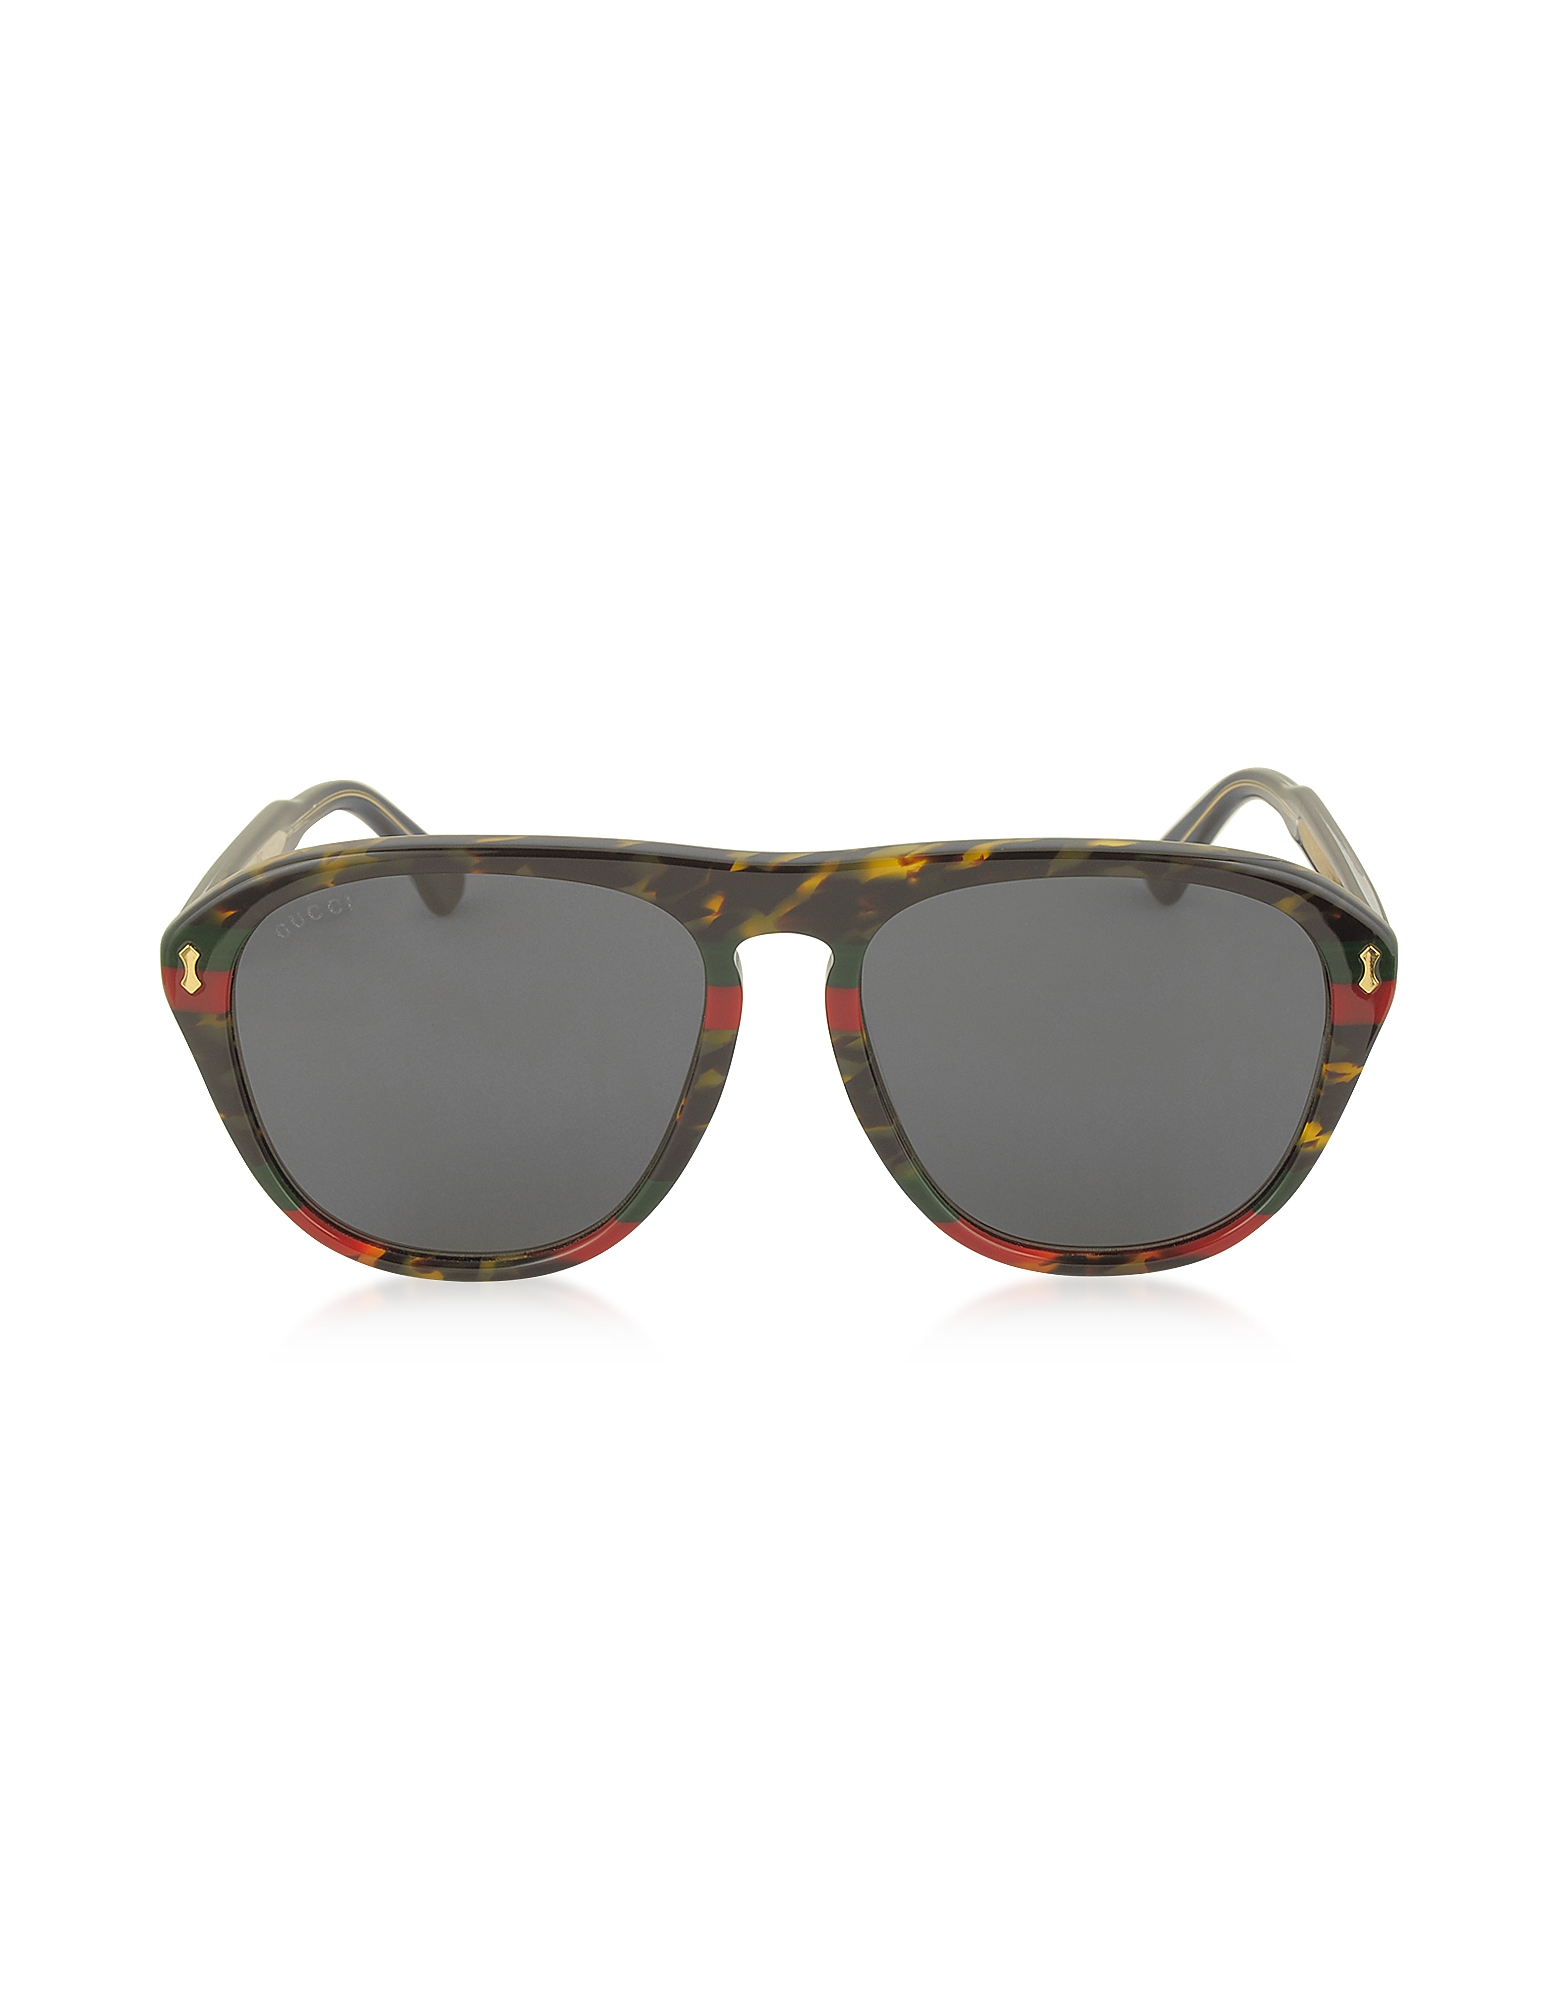 Gucci Designer Sunglasses, GG0128S 003 Havana and Red/Green Acetate Aviator Men's Sunglasses